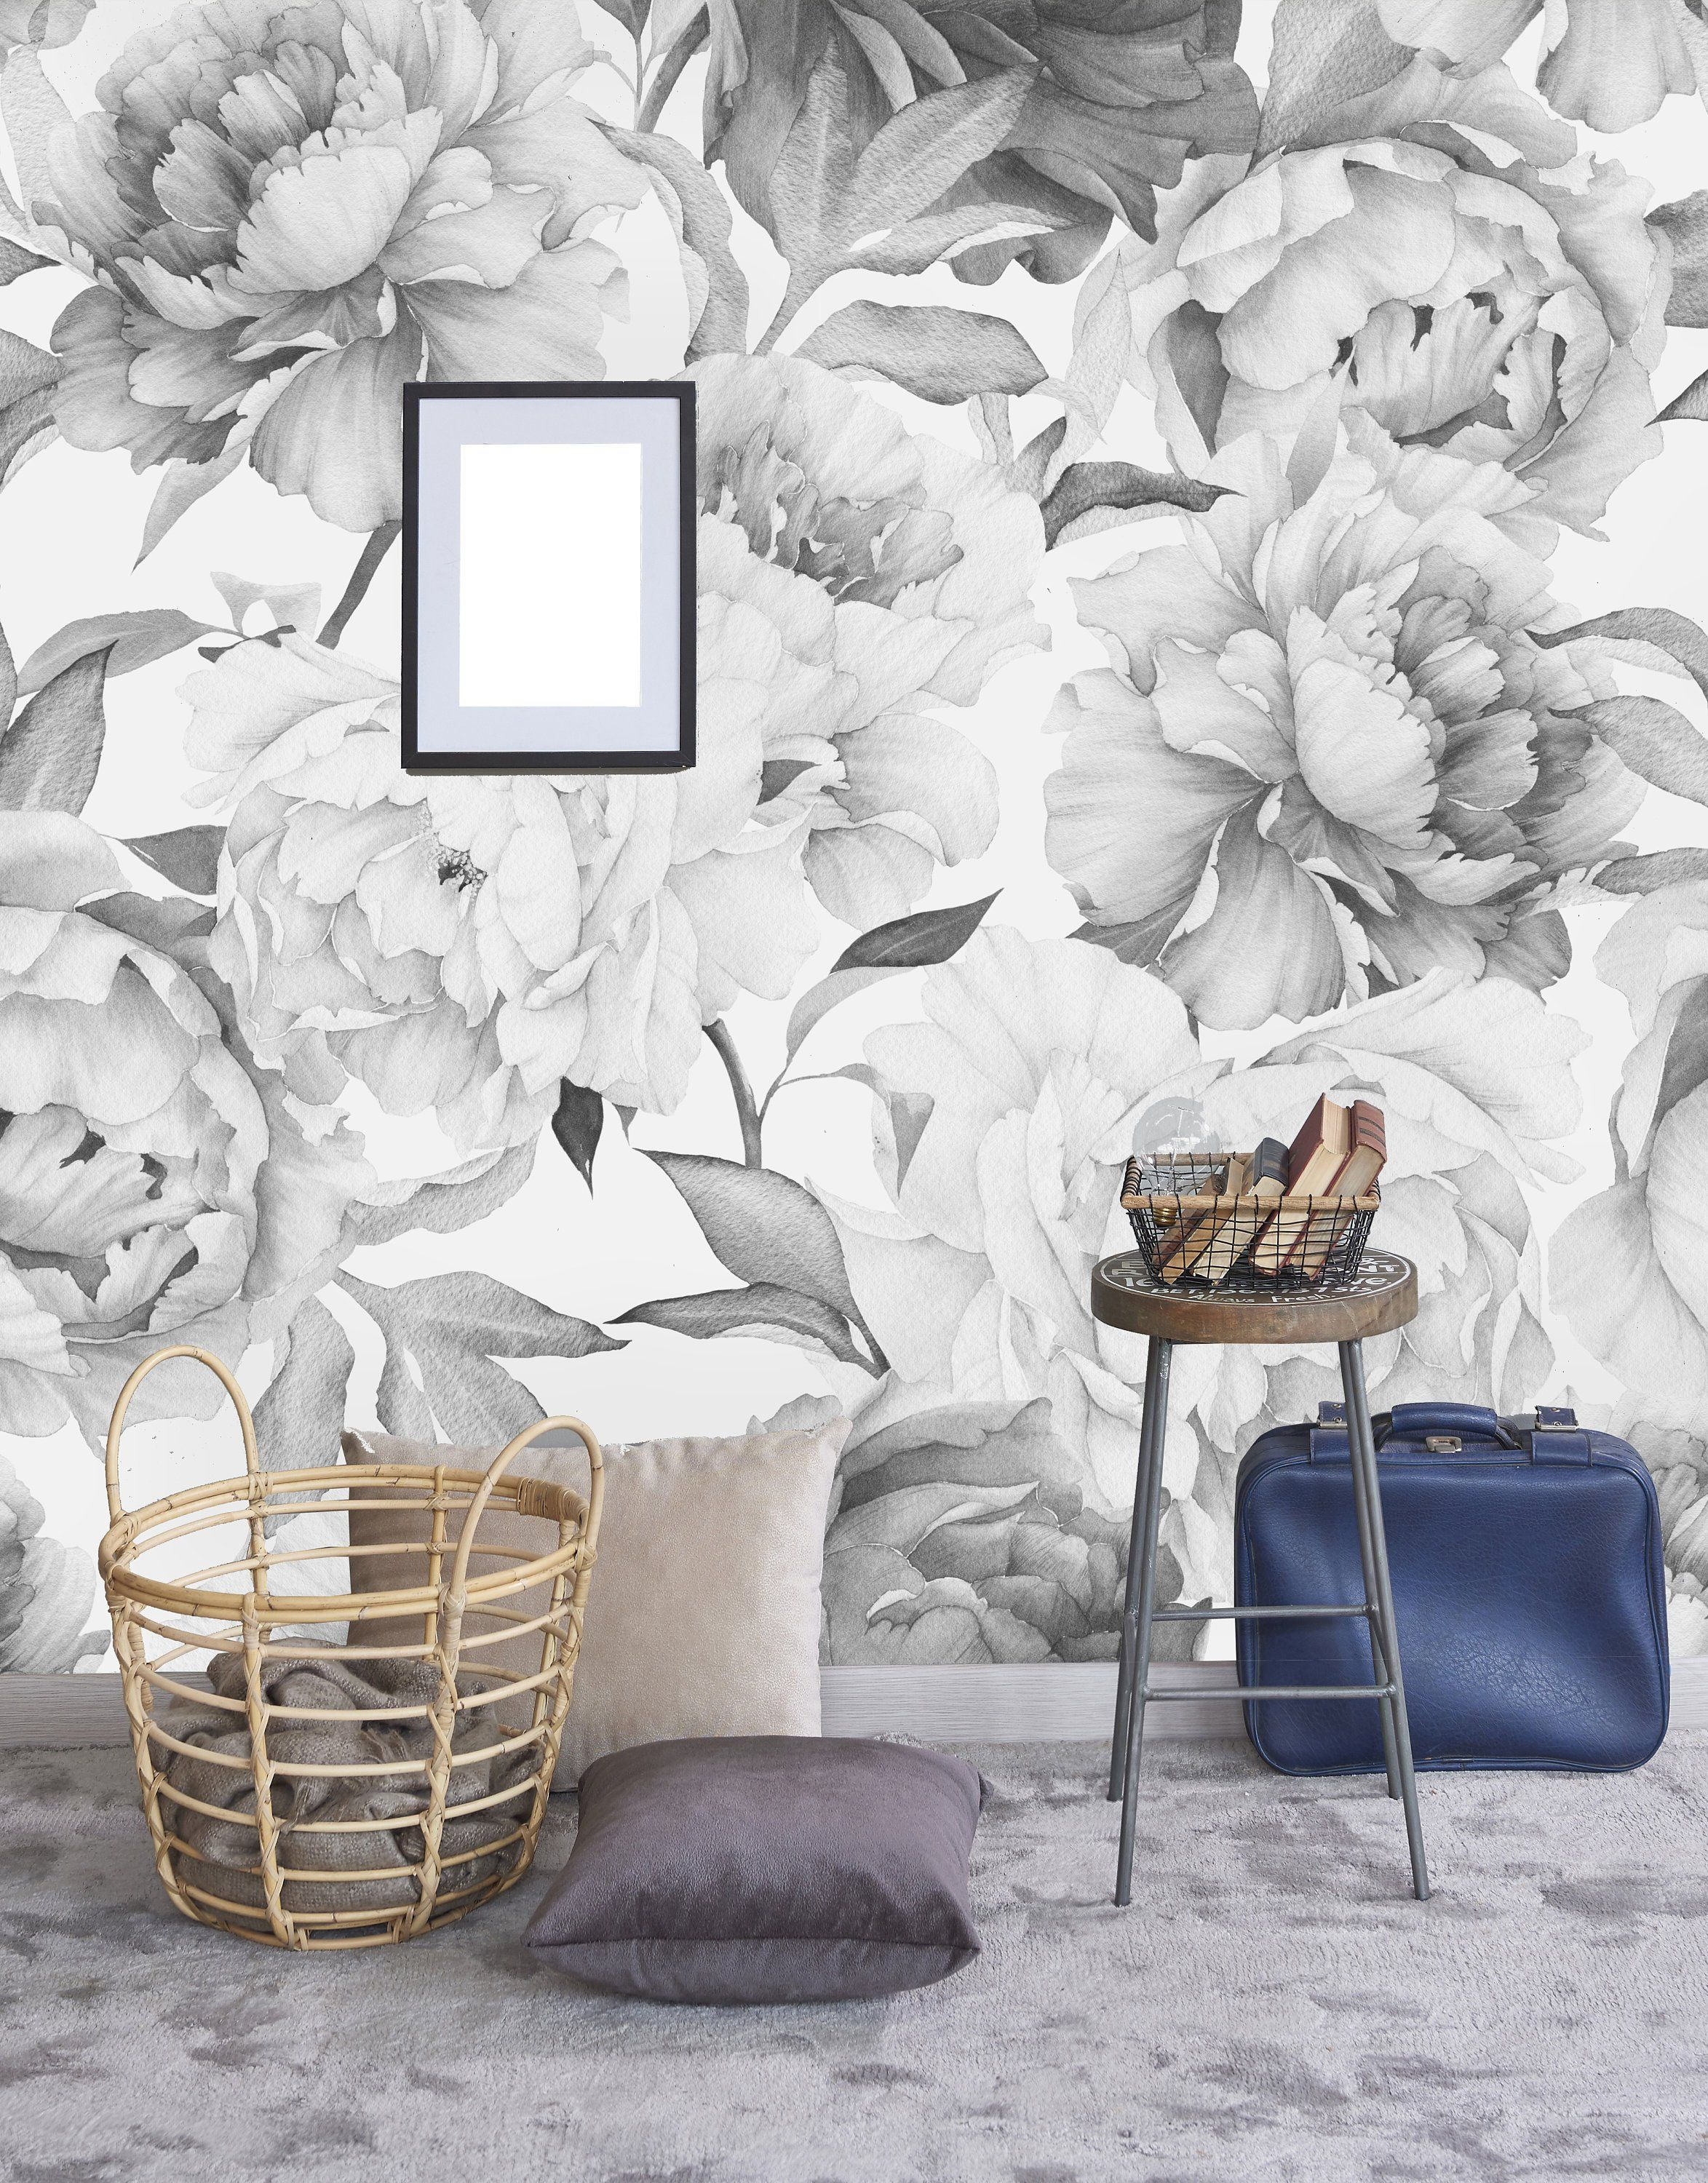 Giant Black And White Peony Removable Wallpaper Peel And Stick Etsy Removable Wallpaper Wall Wallpaper Wallpaper